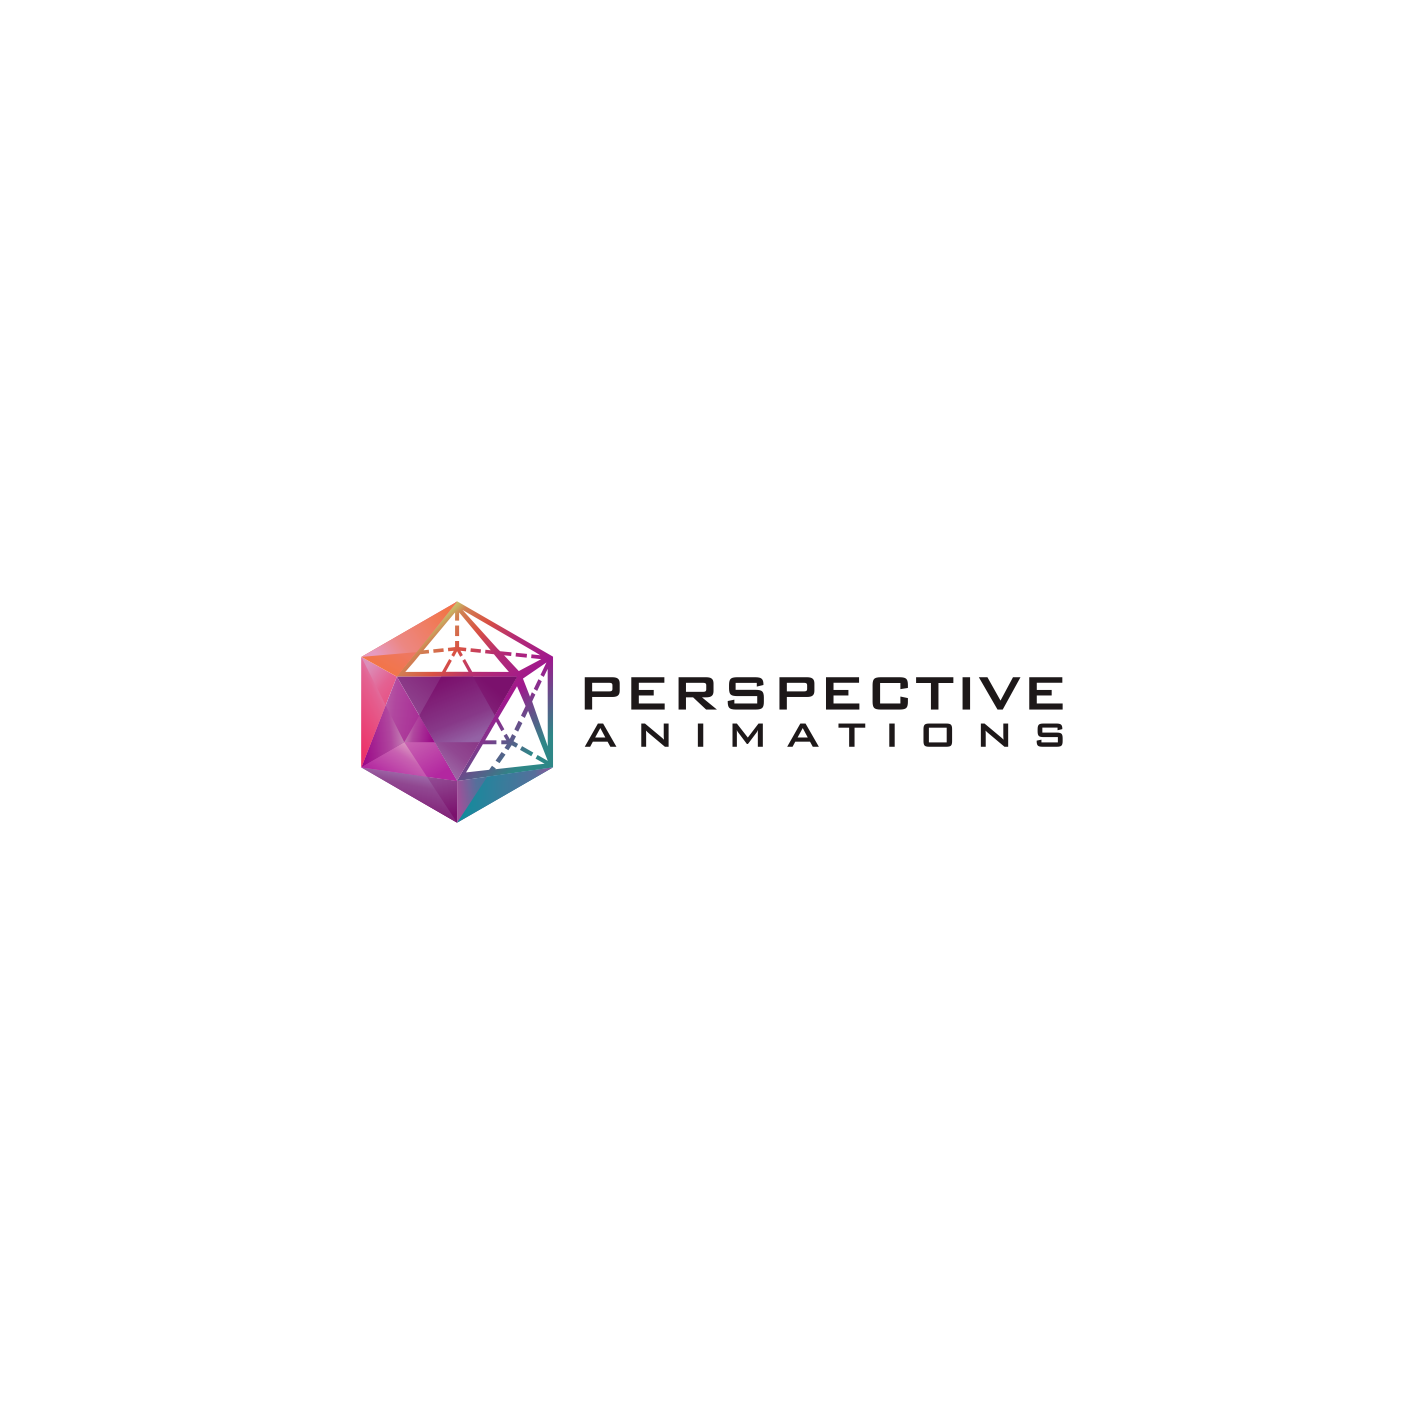 Perspective Animations is looking for a logo! A cash BONUS rewarded to the winner based on exceptionality & quality